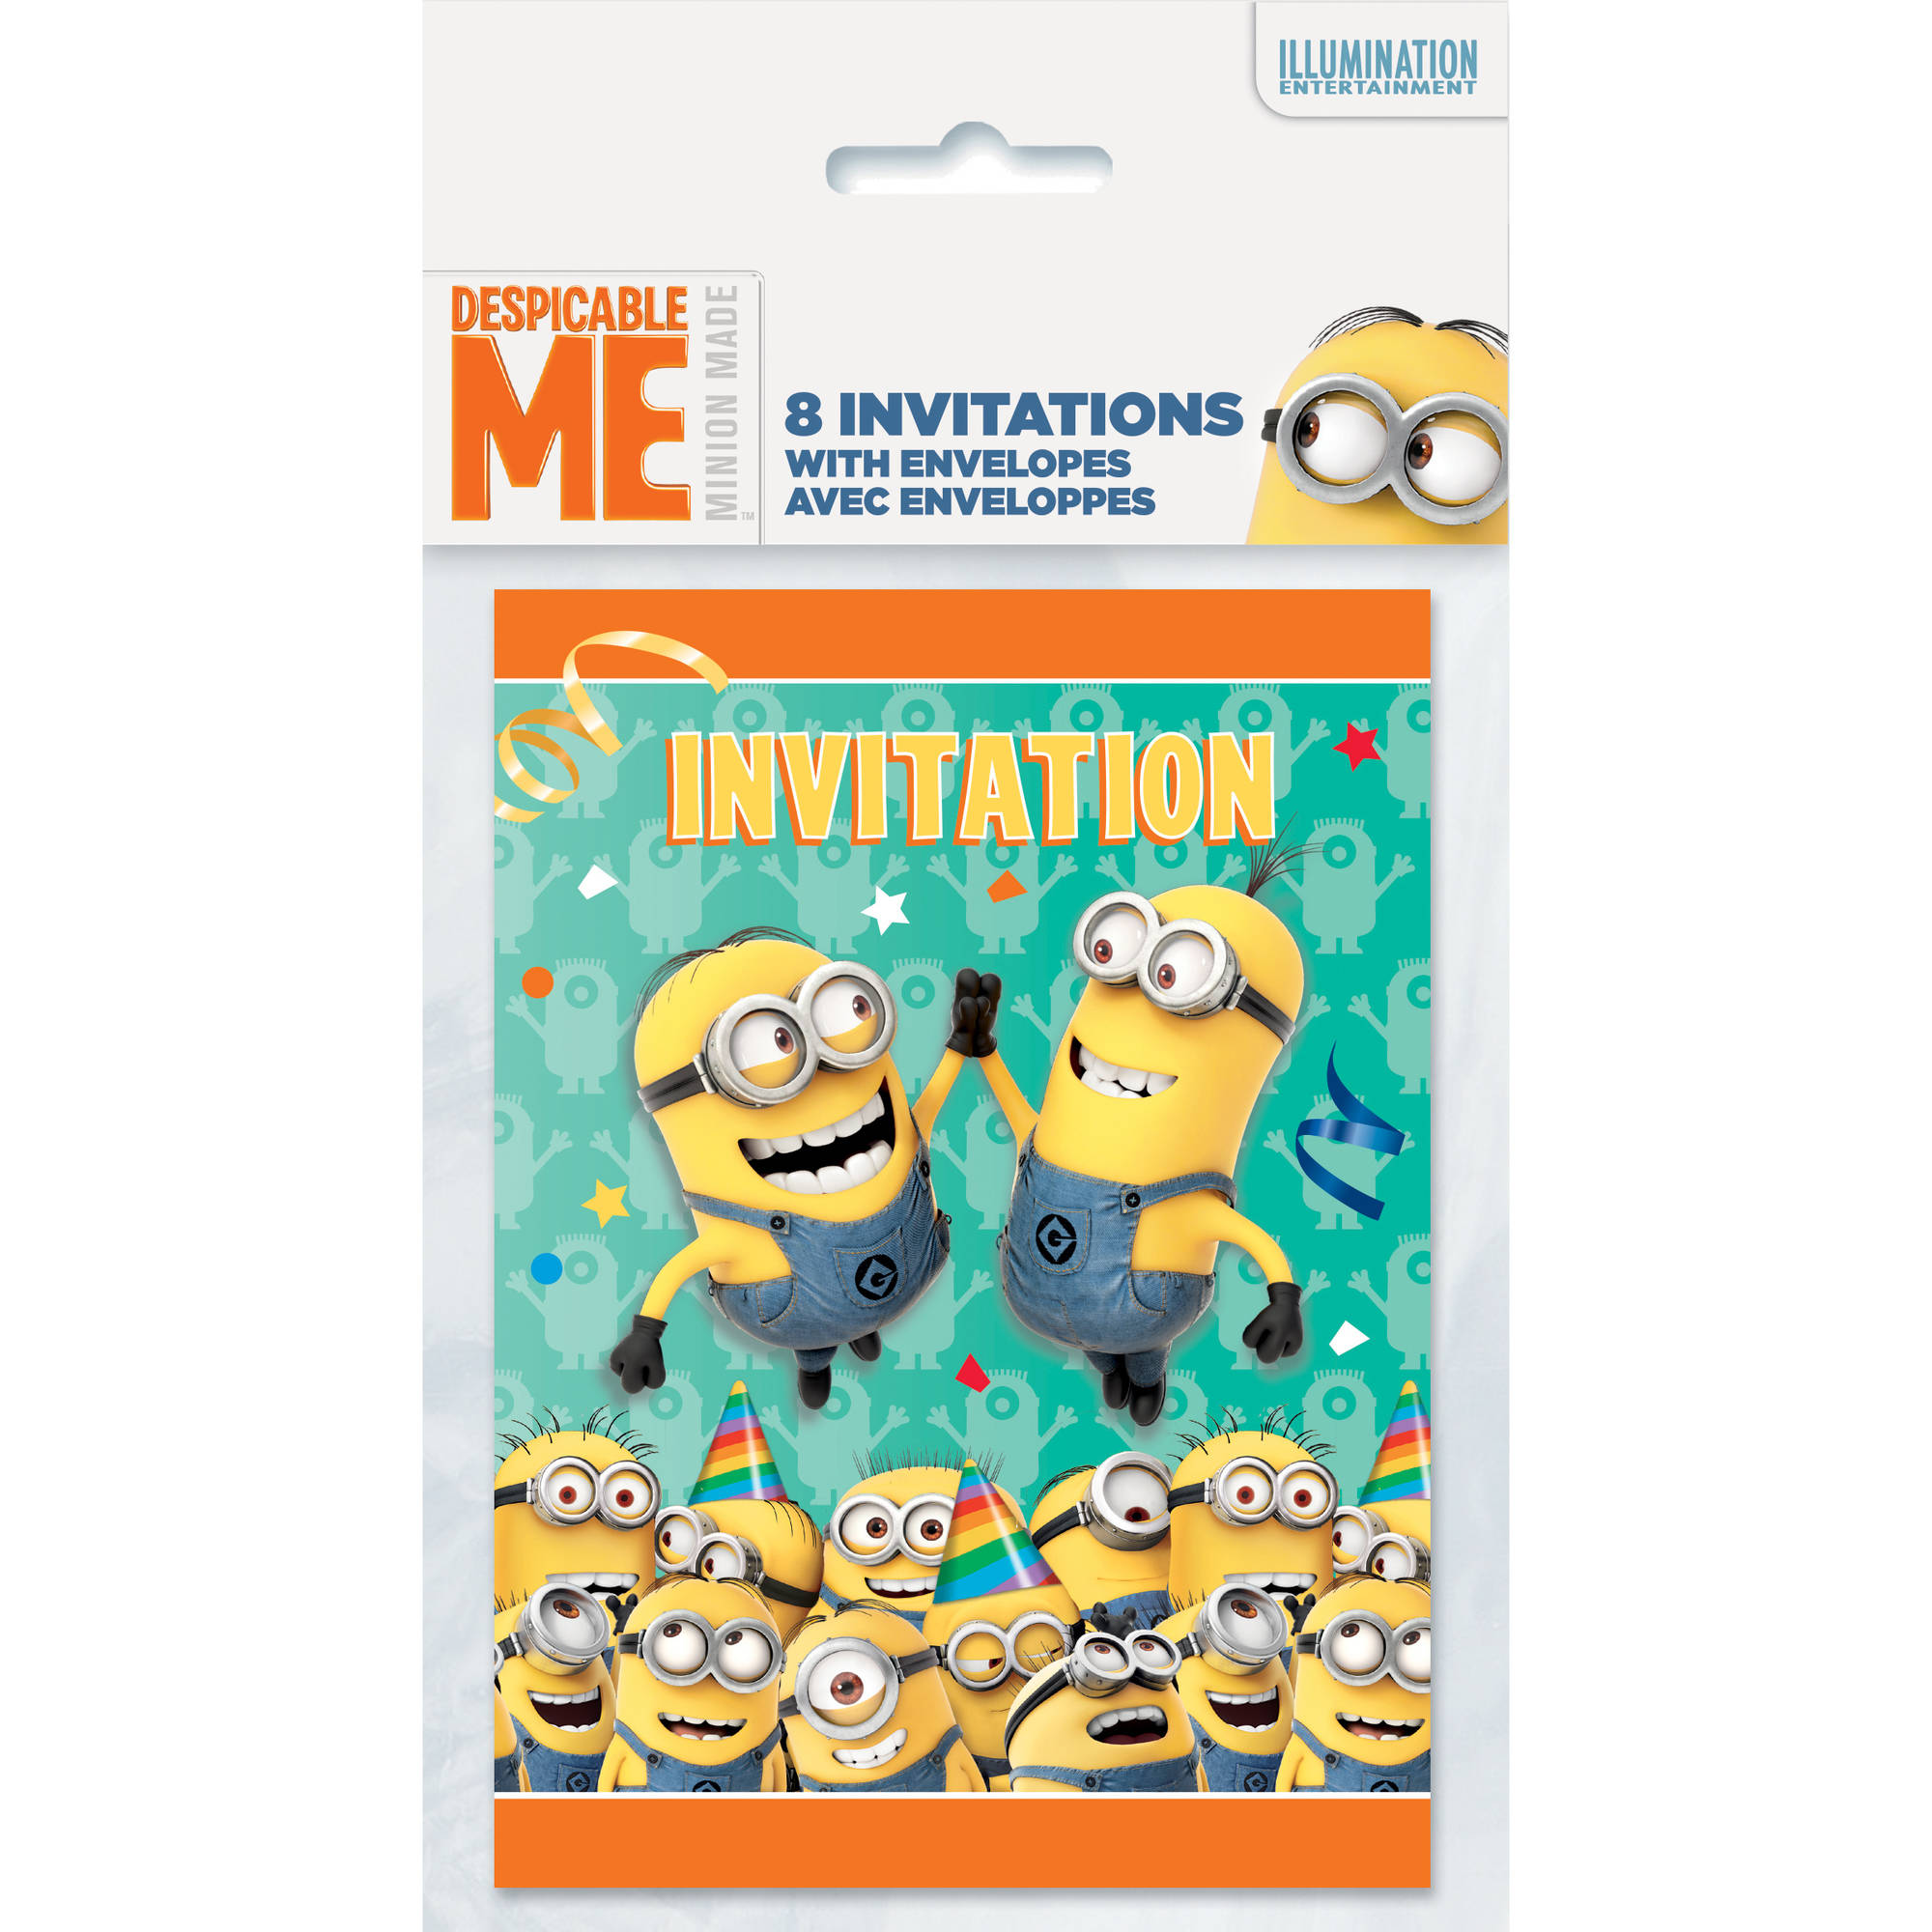 Despicable Me Minions Invitations 8ct Walmart Com